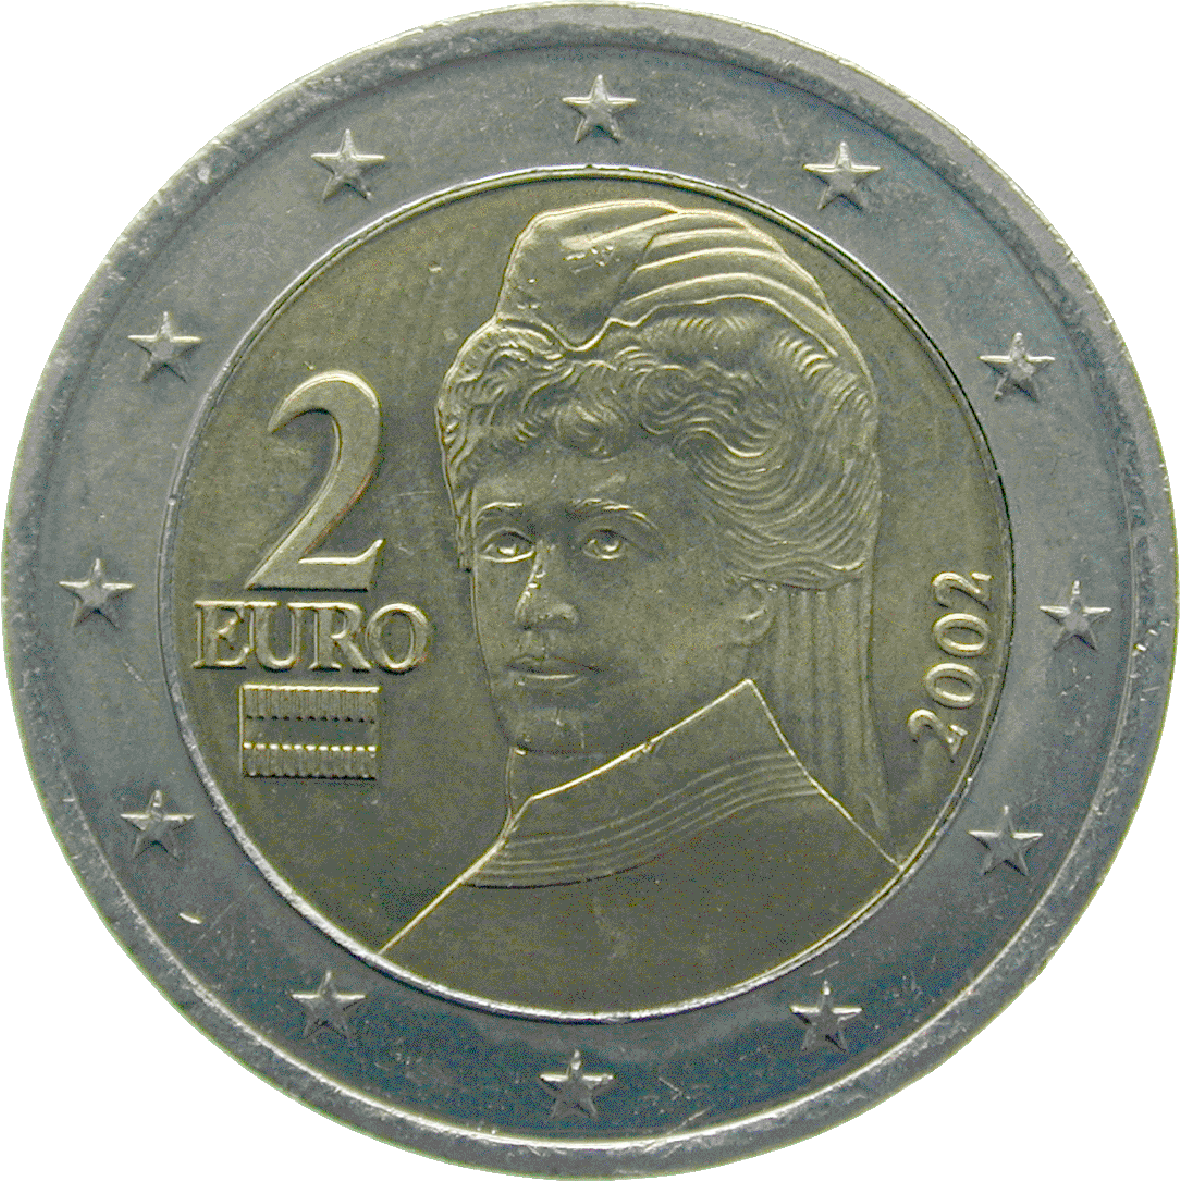 Republic of Austria, 2 Euro 2002 (reverse)